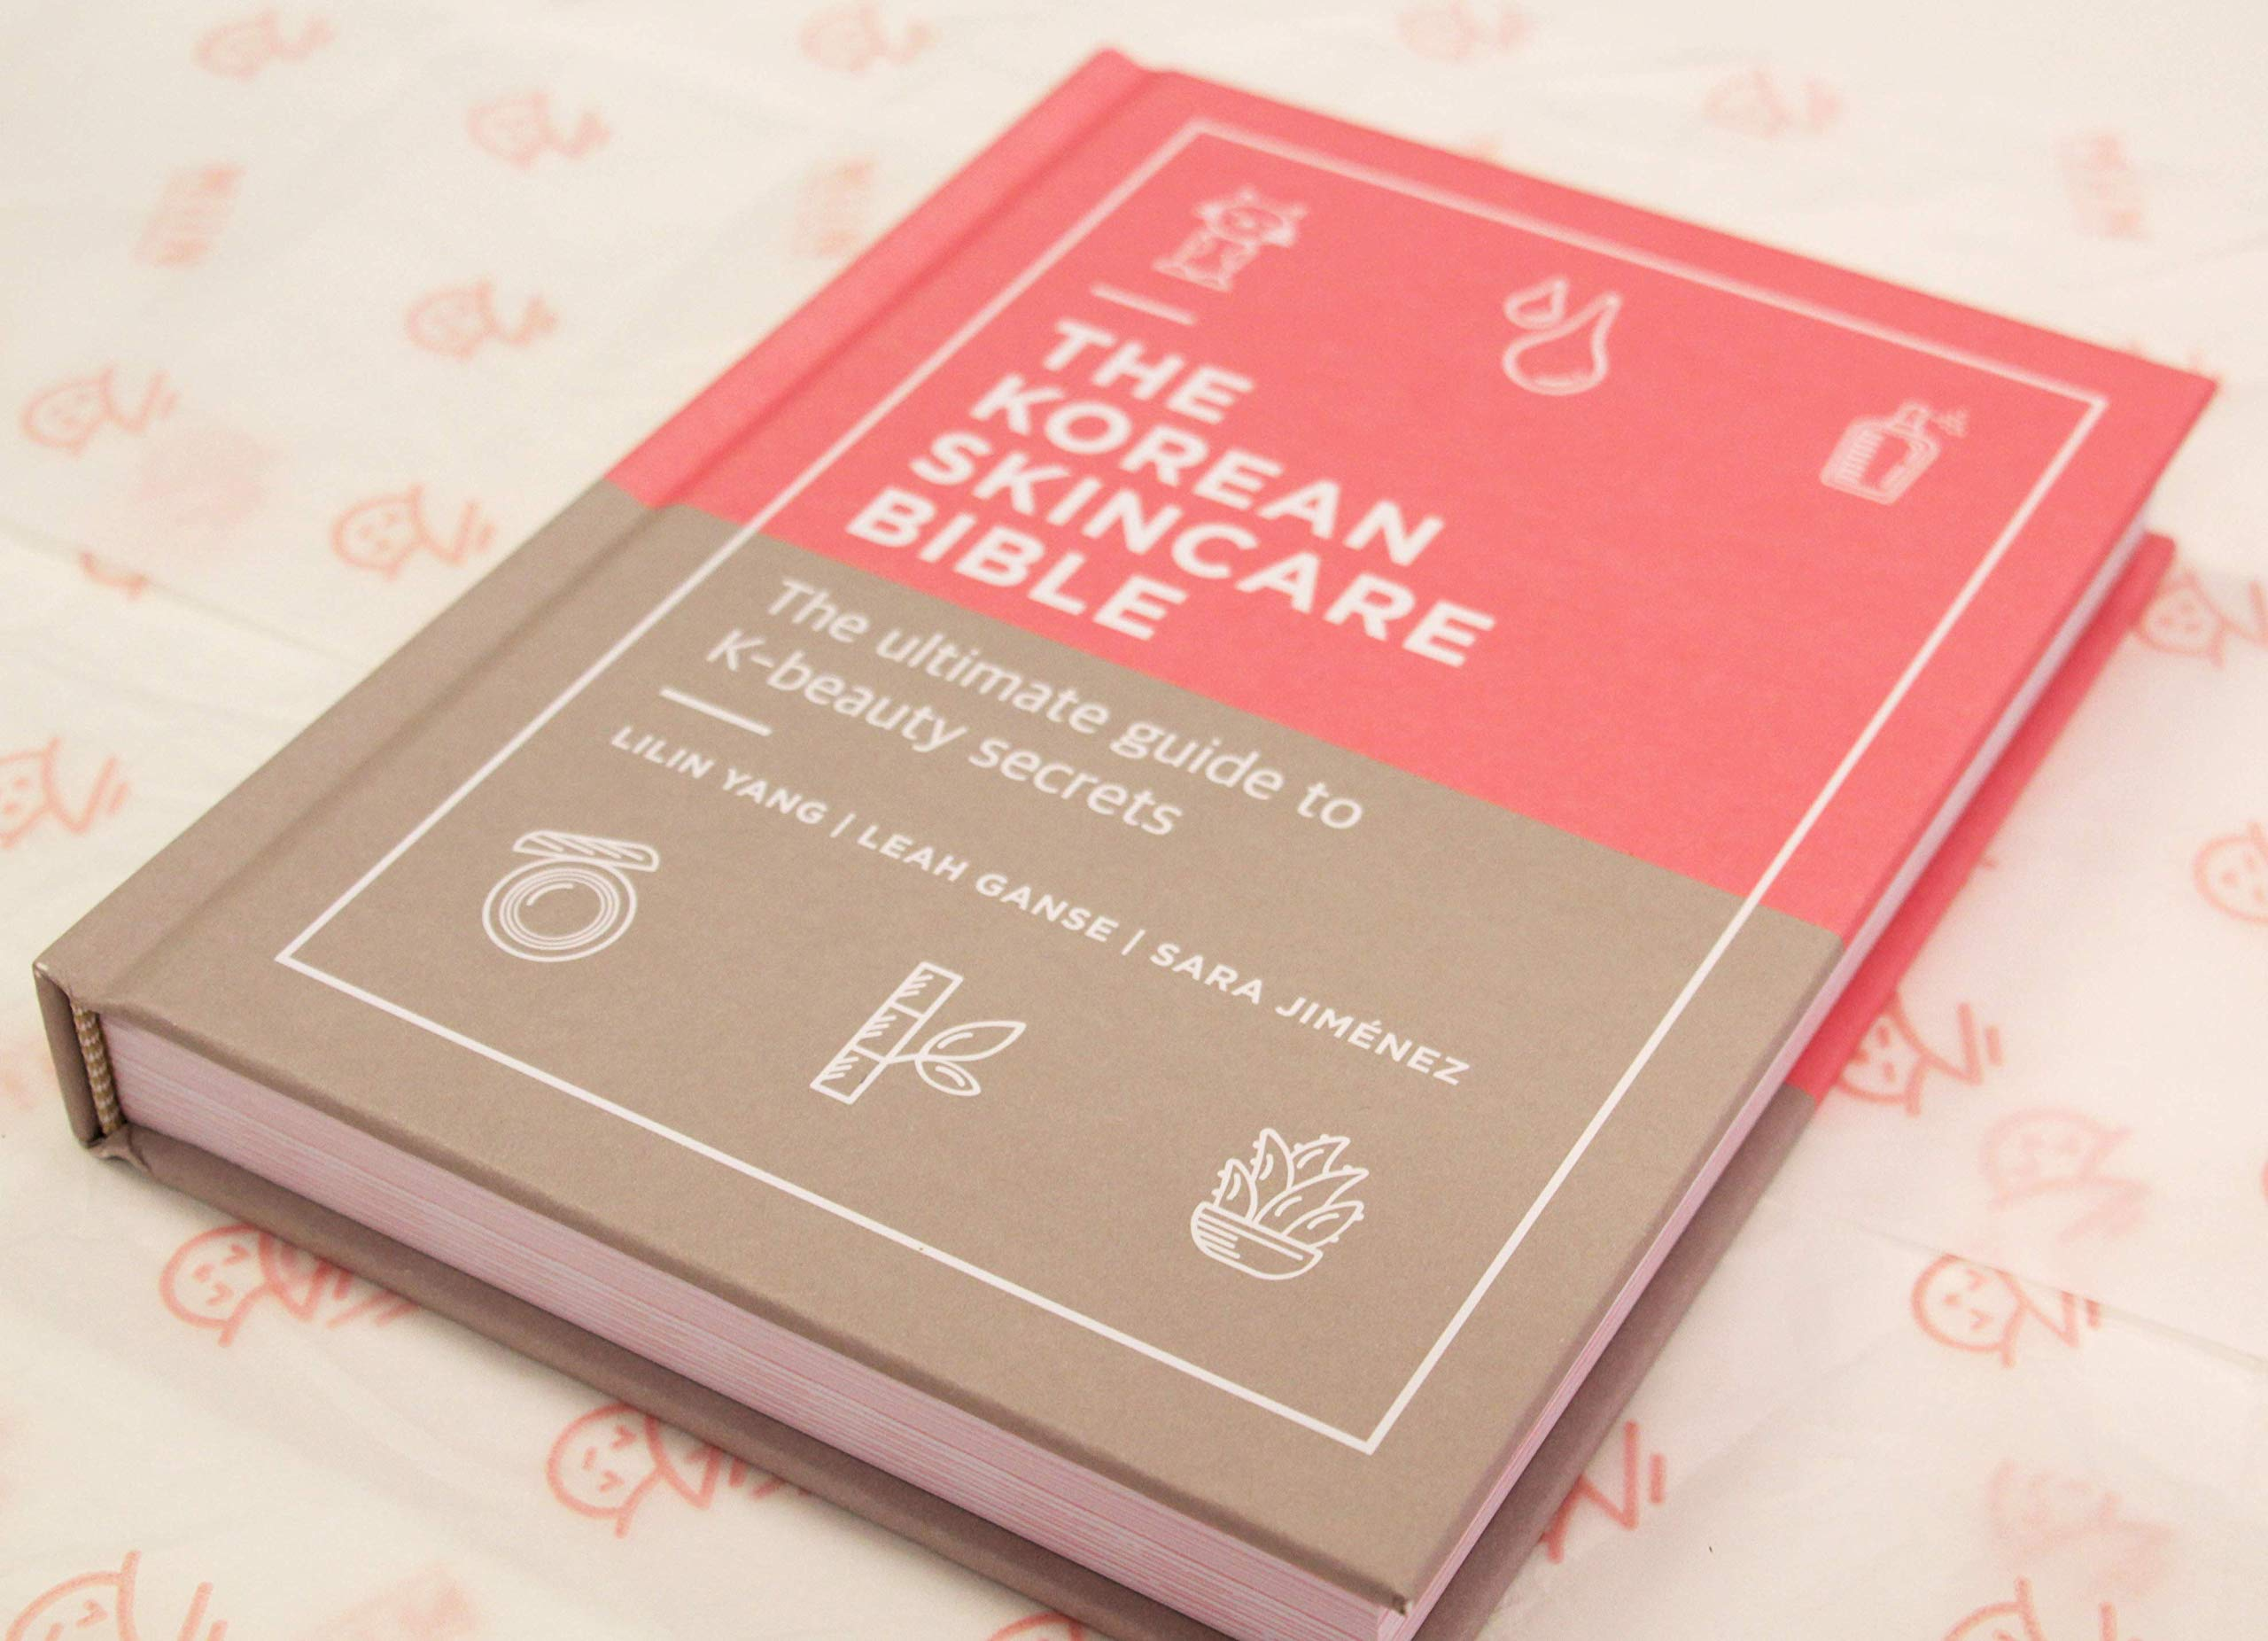 Beauty Shopping The Korean Skincare Bible: The ultimate guide to K-beauty secrets